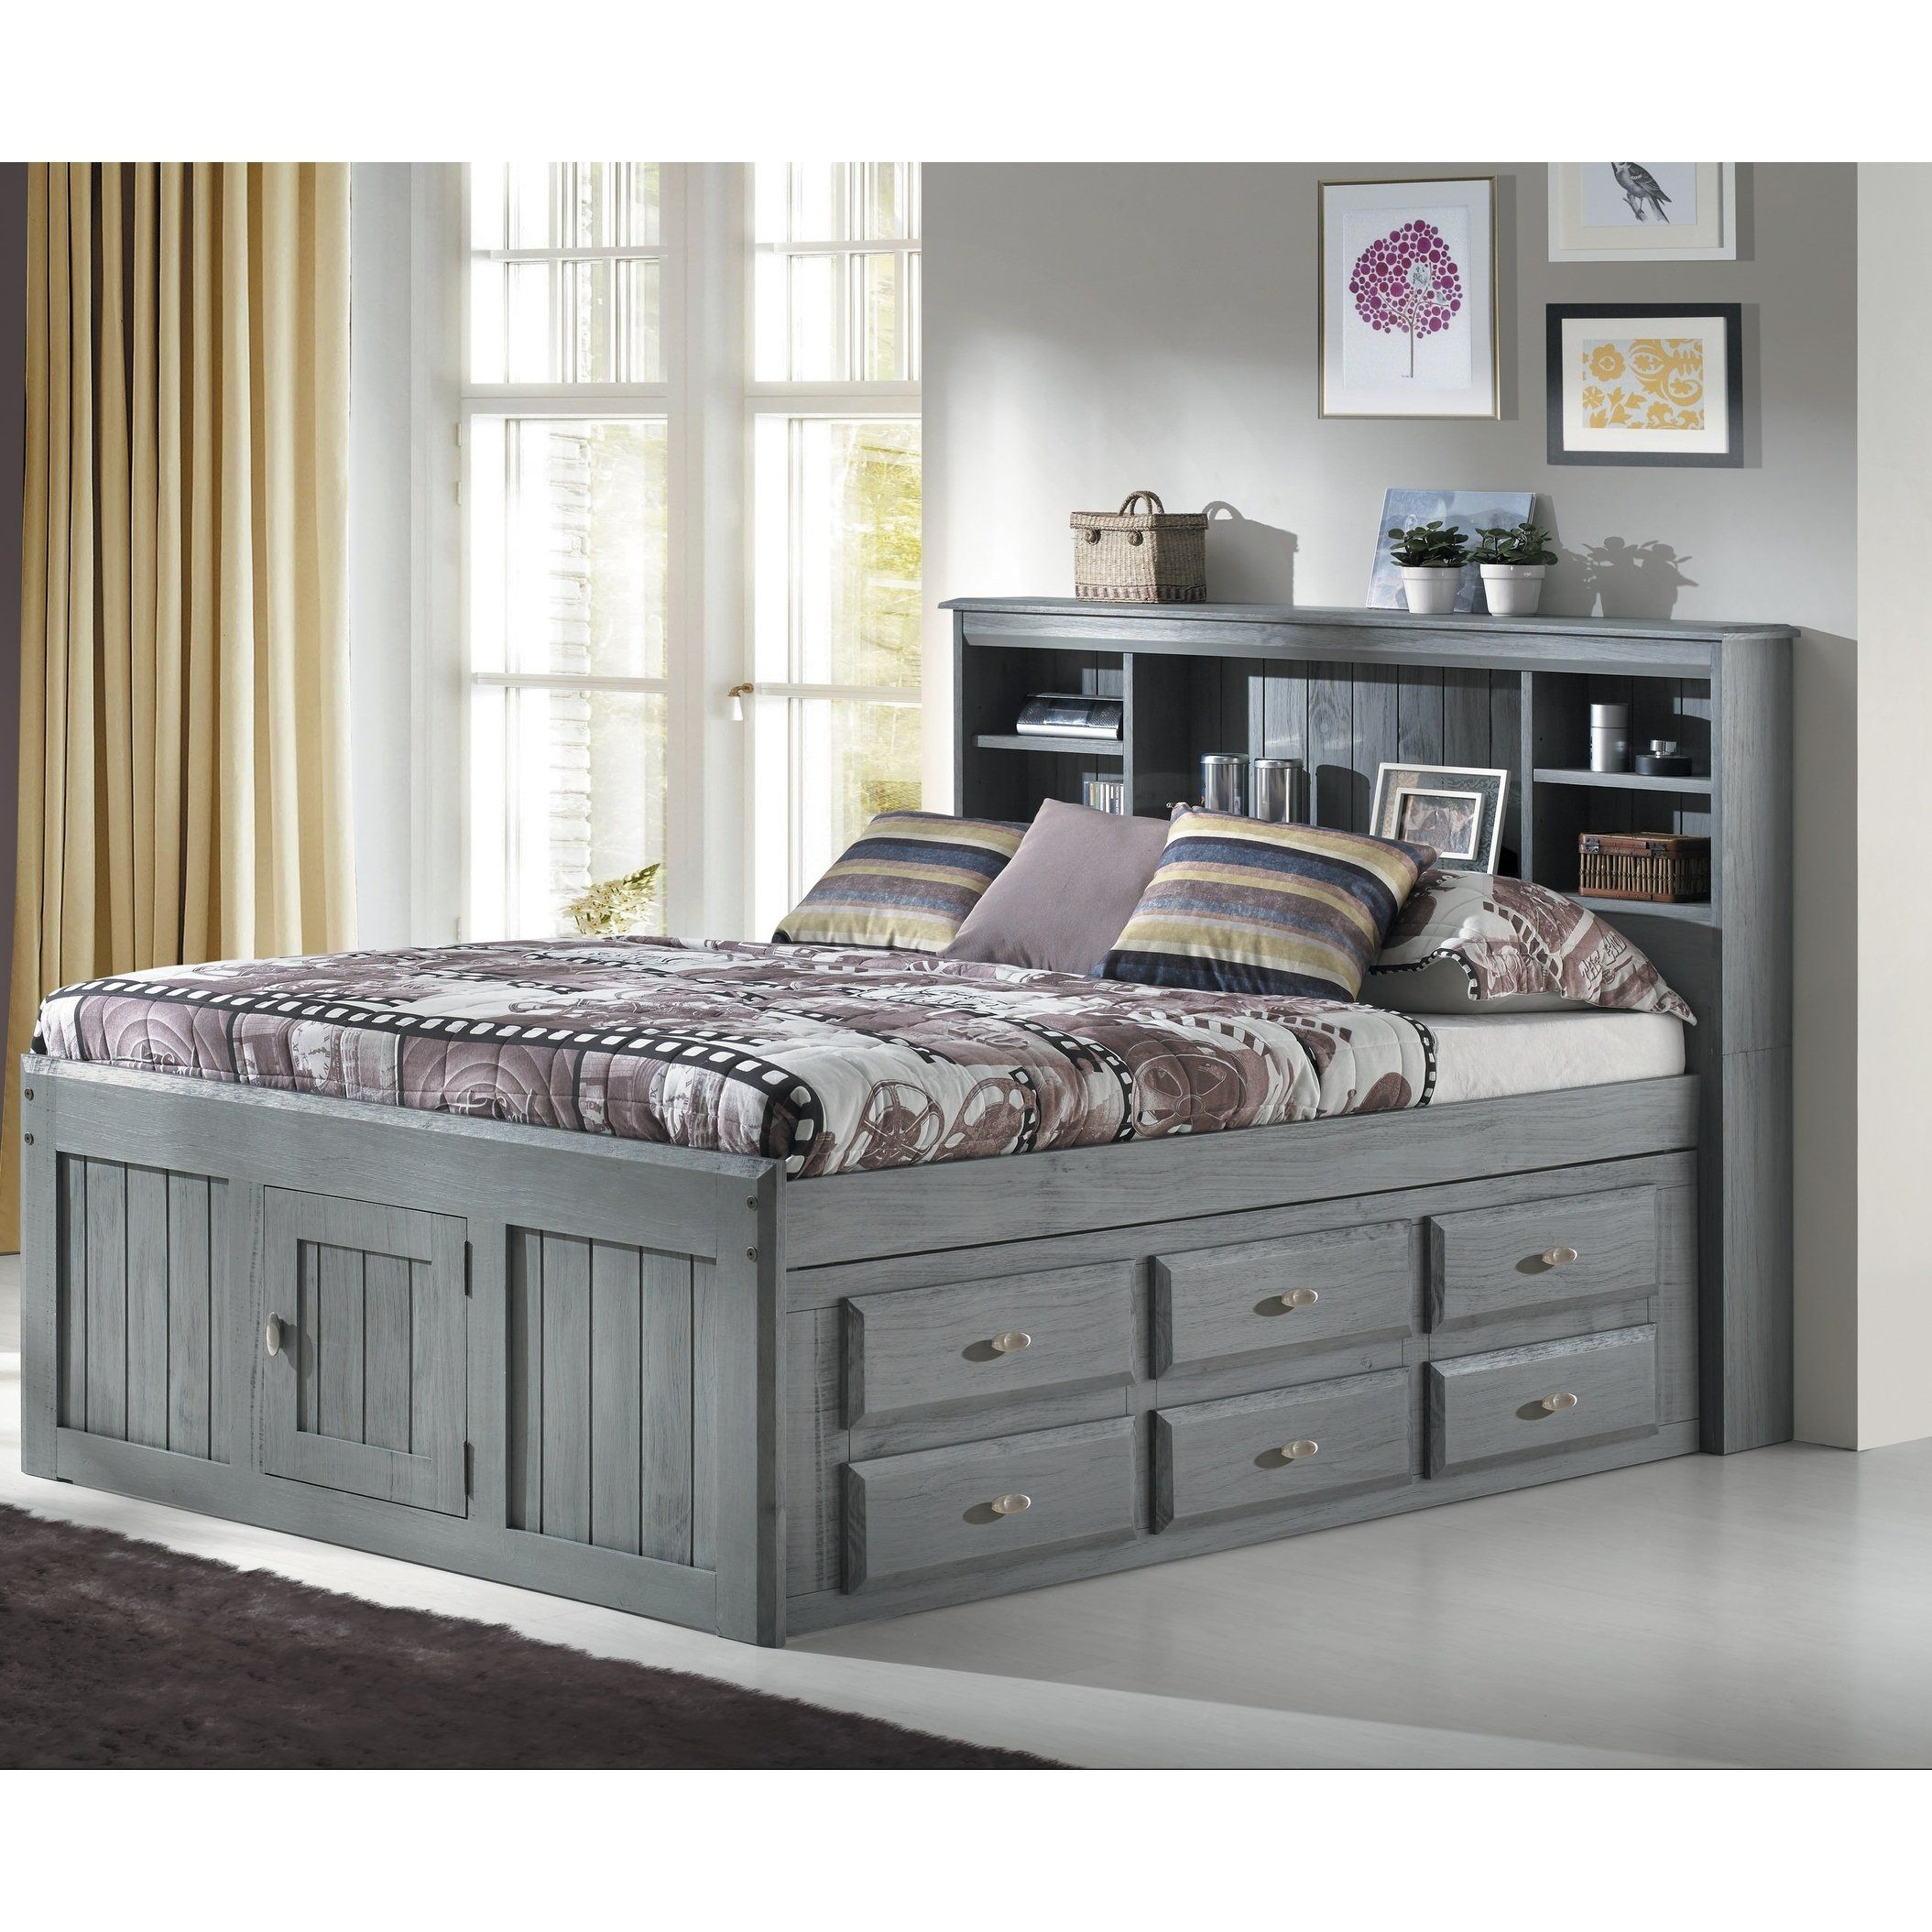 Solid Pine Full Bookcase Bed With 6 Drawers In Charcoal Bed With Drawers Bookcase Bed Captains Bed